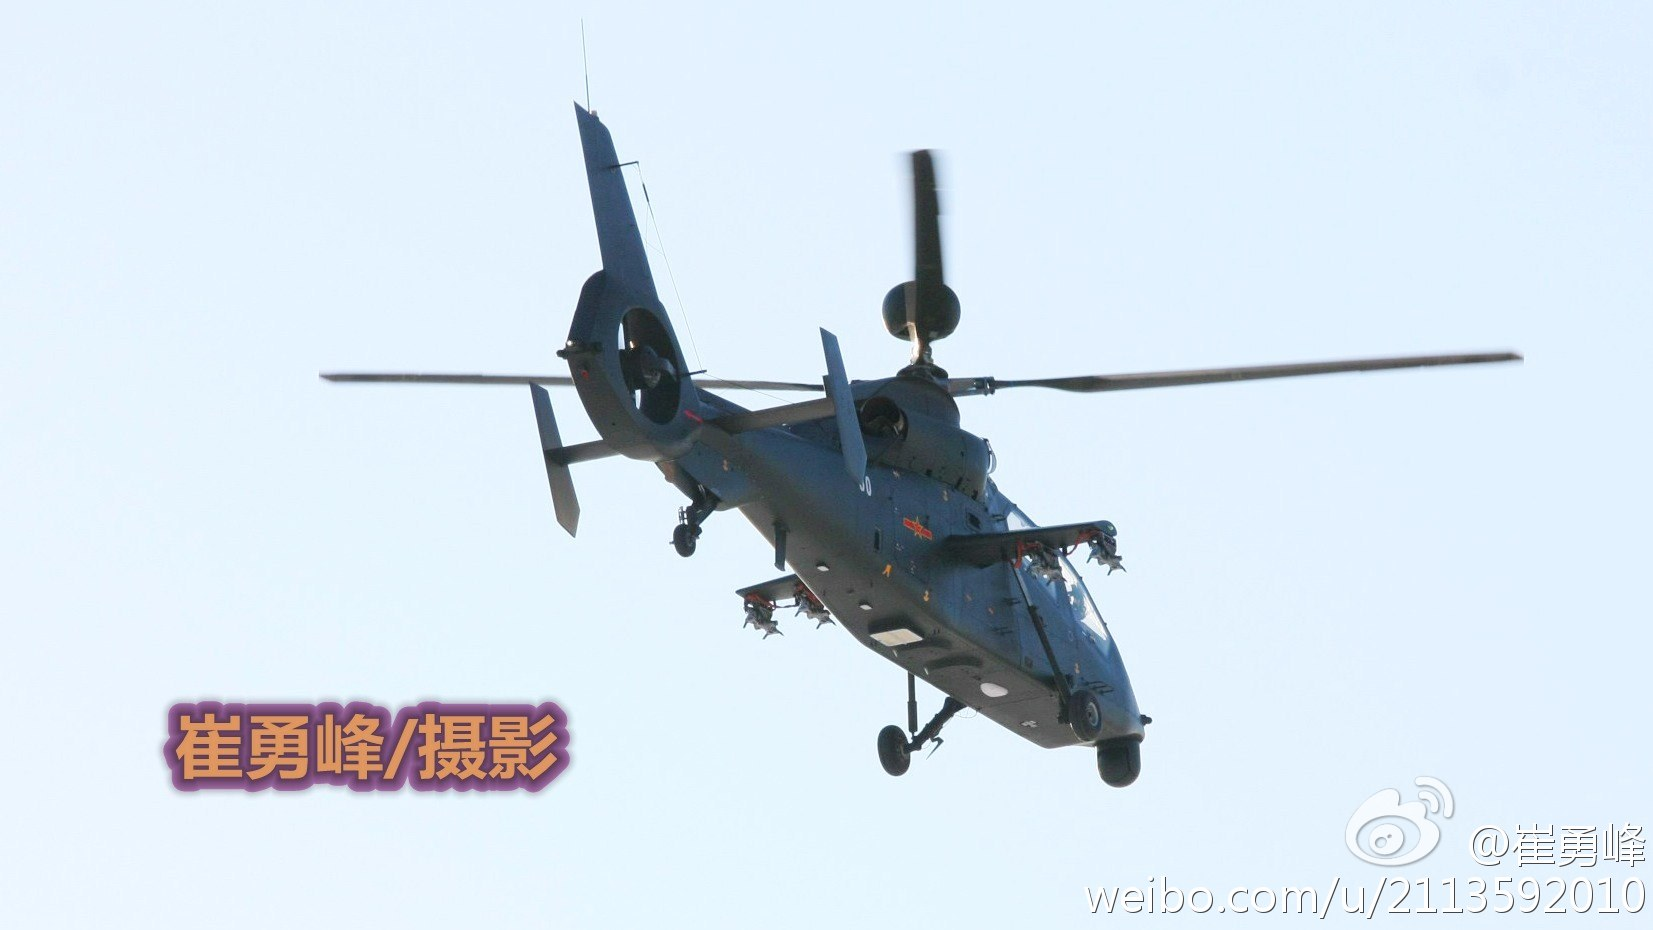 Z-19 light scout/attack helicopter 7dfadacajw1eccdy5hohbj219x0puq5j1